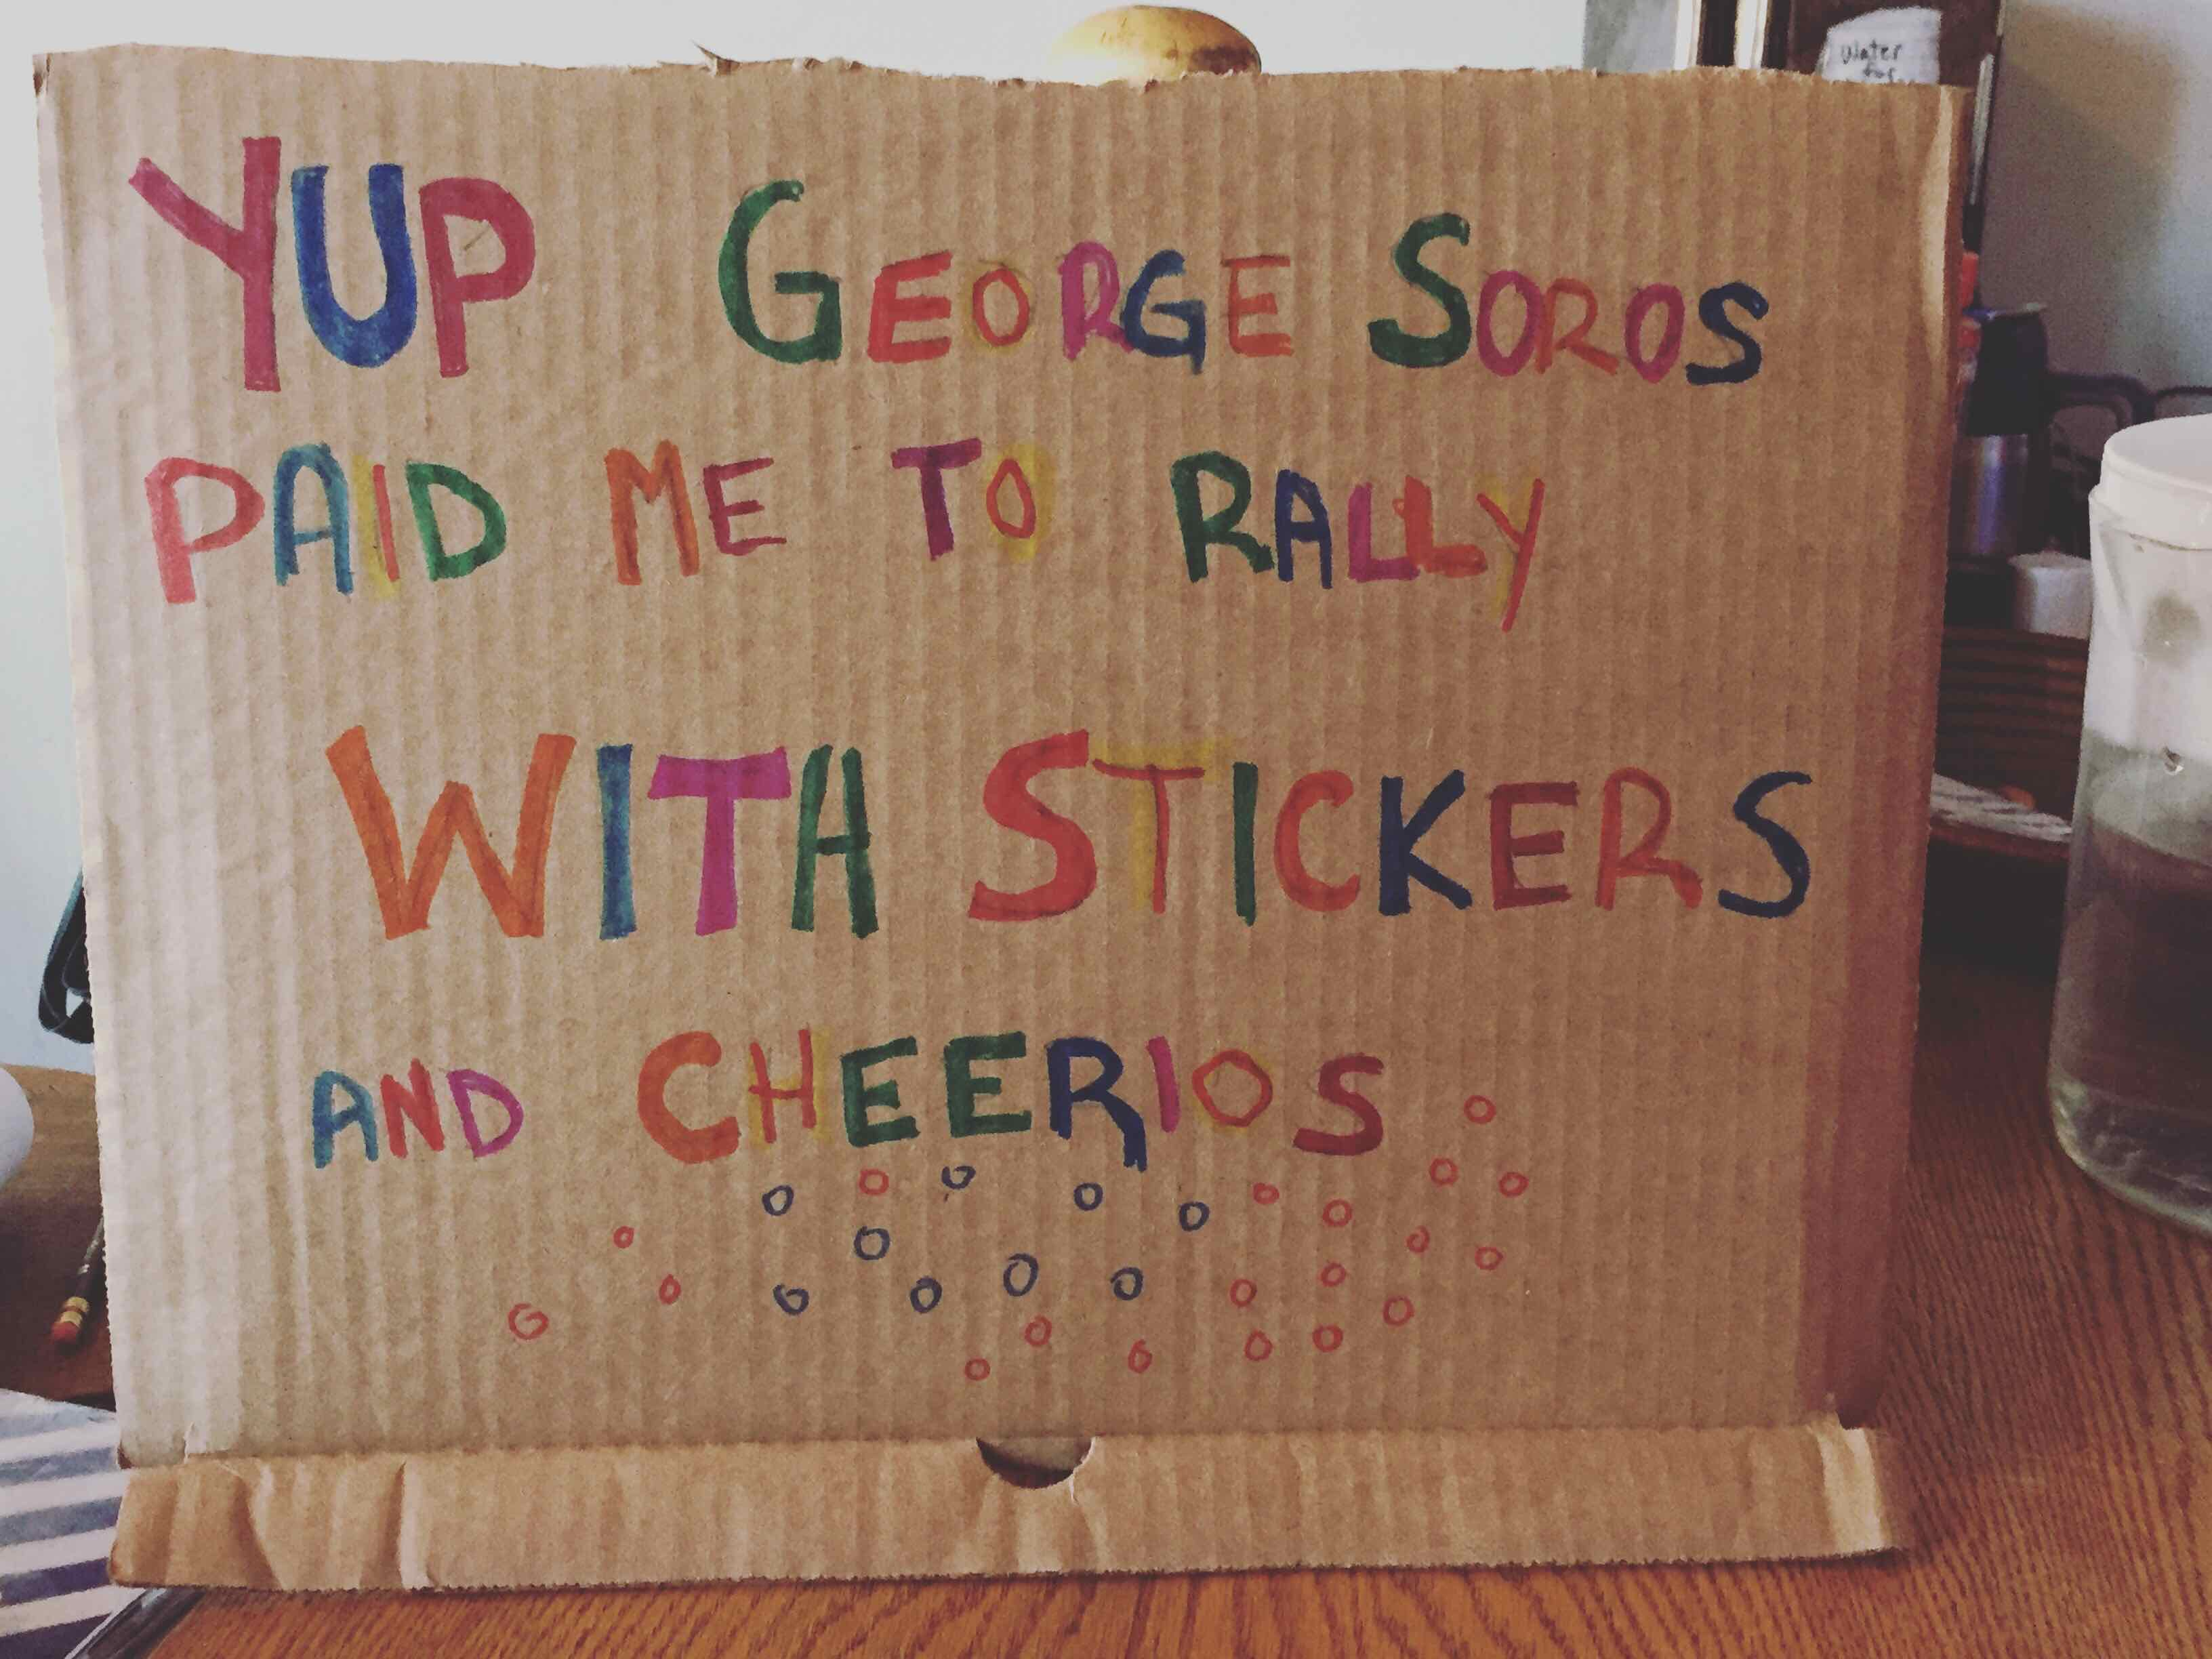 """Photo: Cardboard sign written in multi-colored marker reading """"Yup George Soros Paid Me to Rally with Stickers and Cheerios"""""""